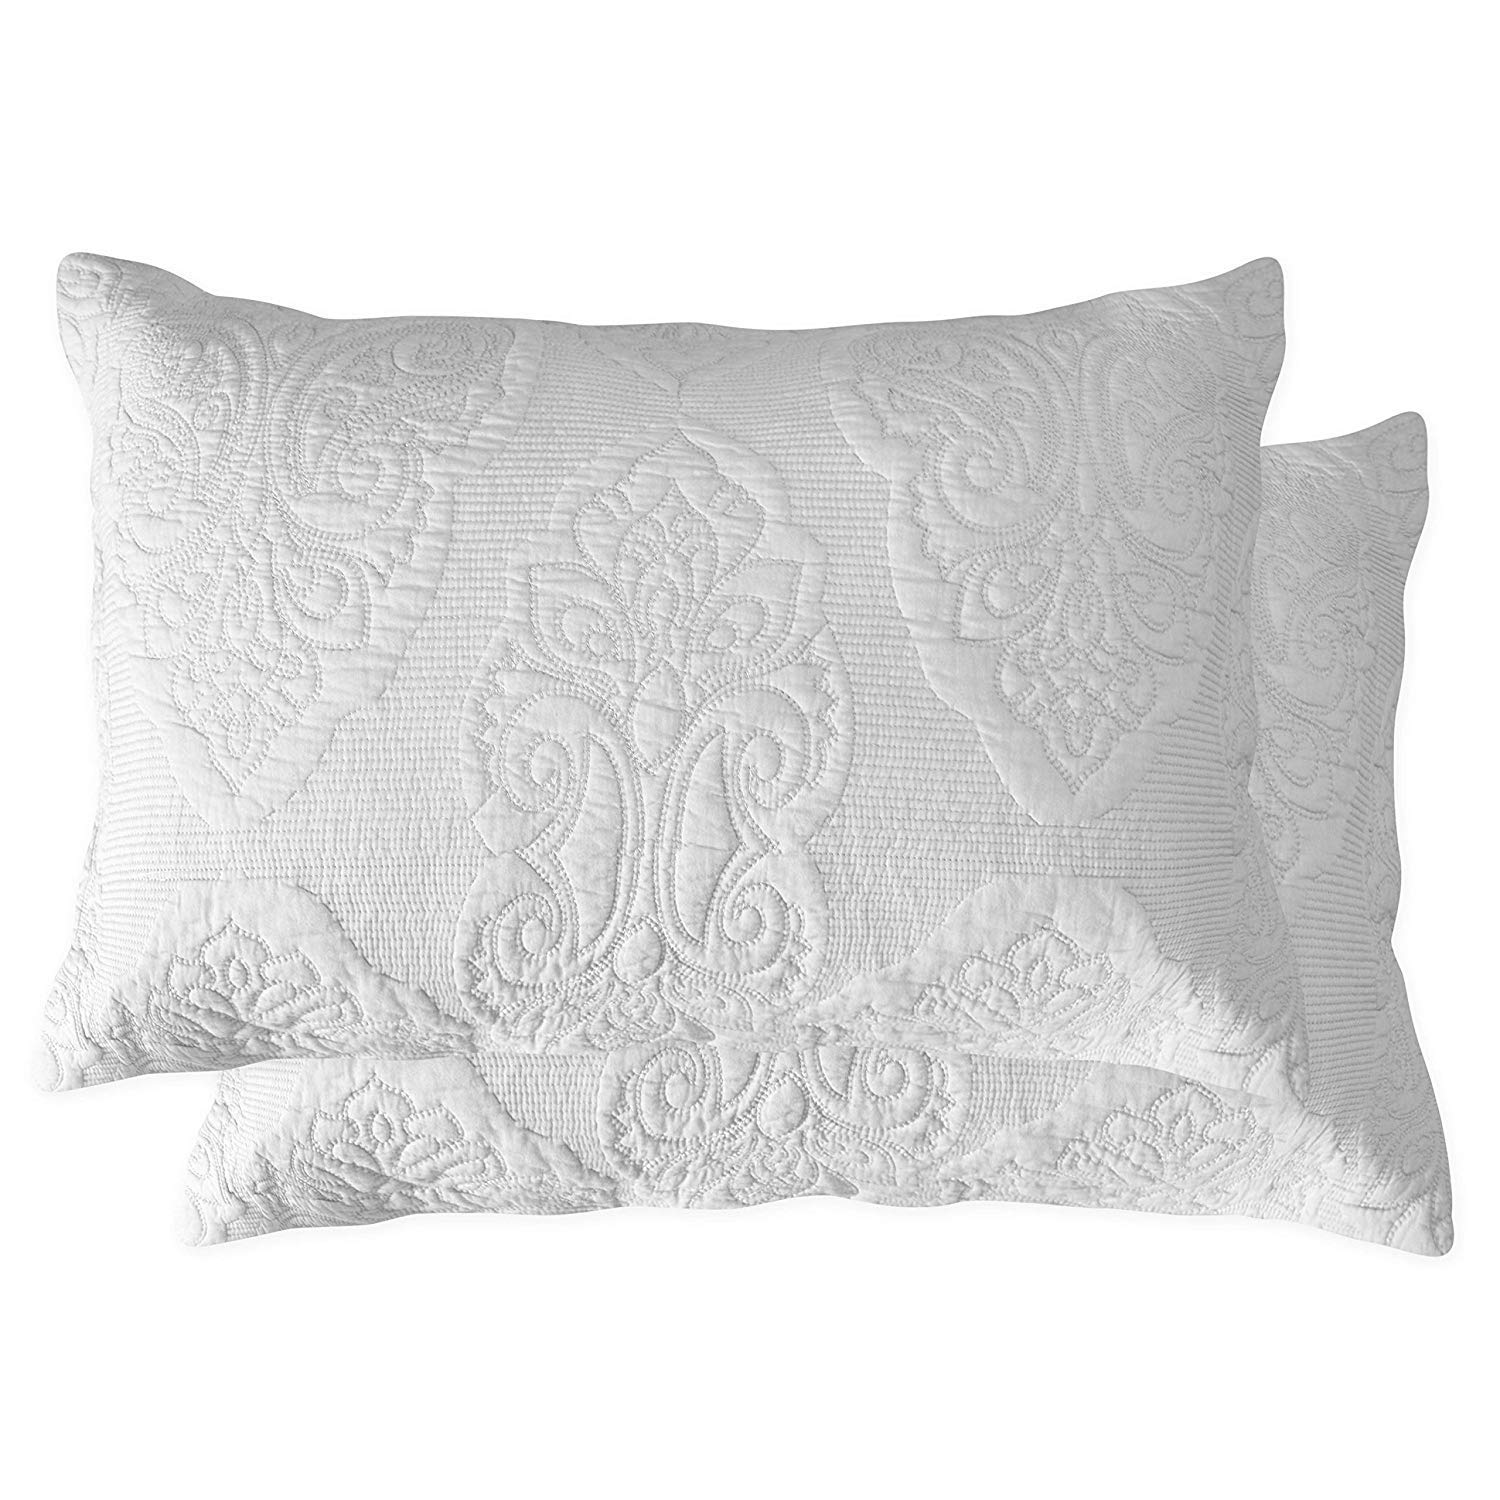 Brandream White Paisley Quilted Pillow Shams King Size Pillow Cases Set of 2 100% Cotton Soft Decorative Pillow Covers by Brandream